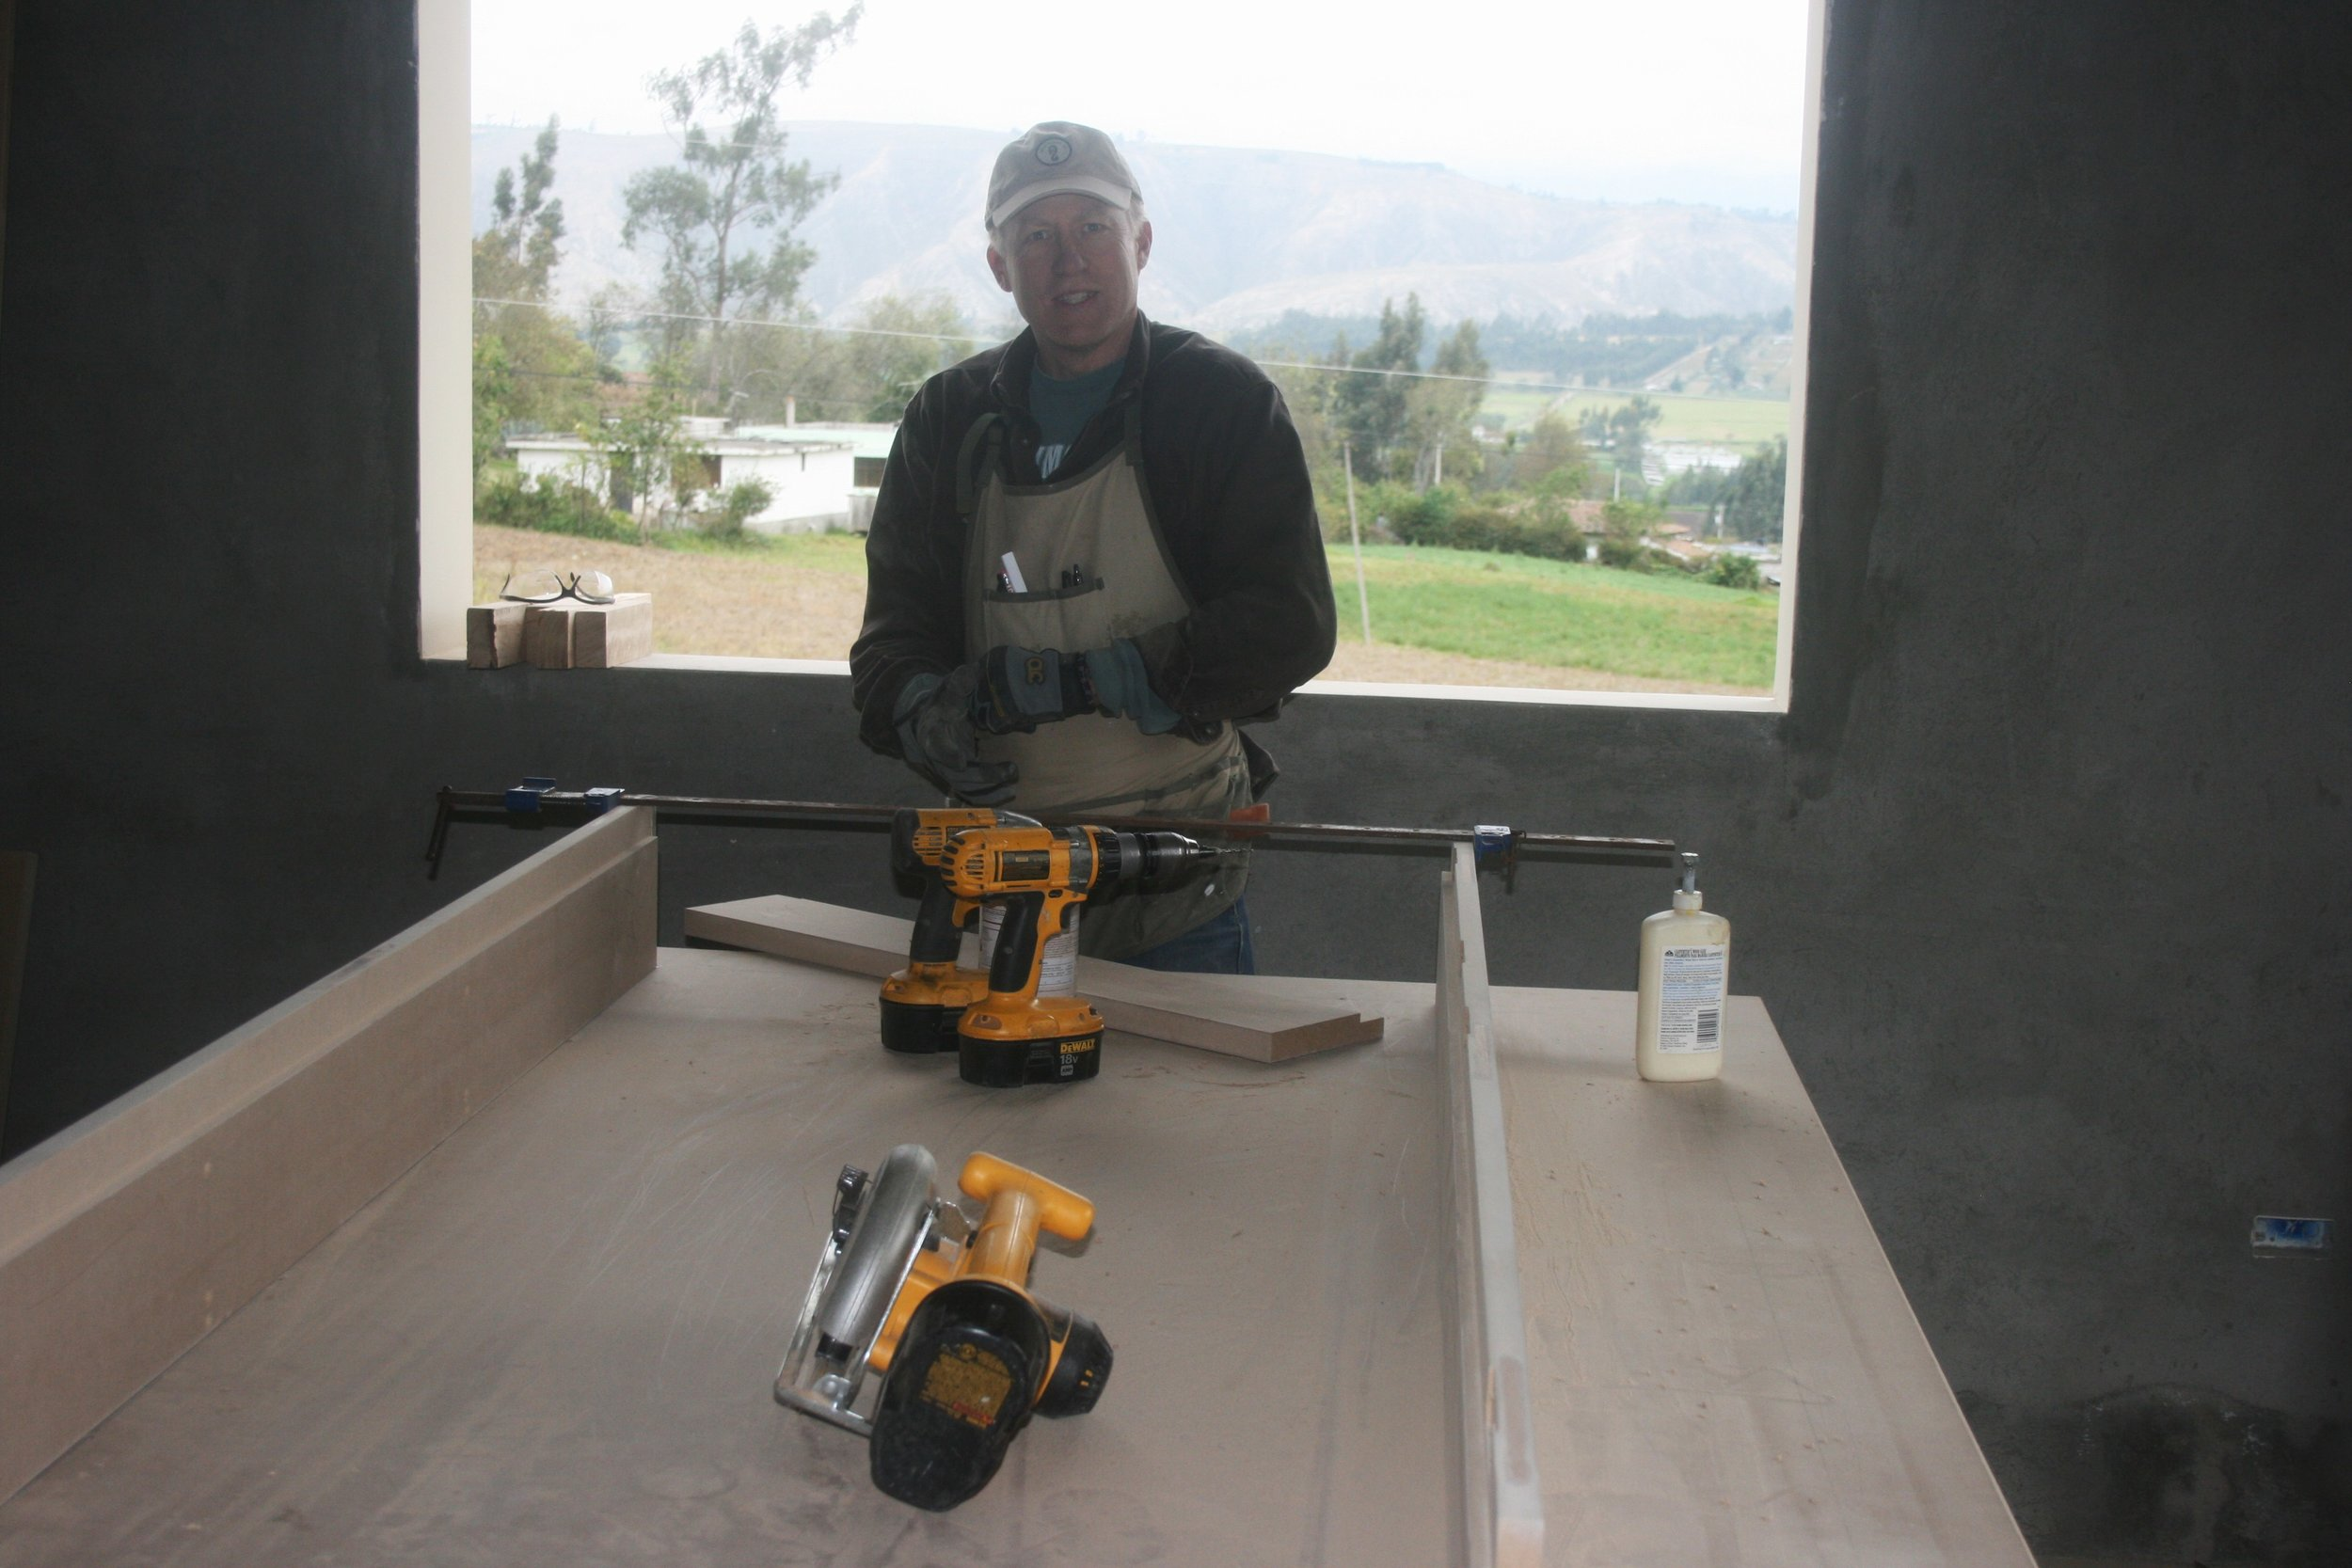 Dean fabricating door jambs for the Latancunga home